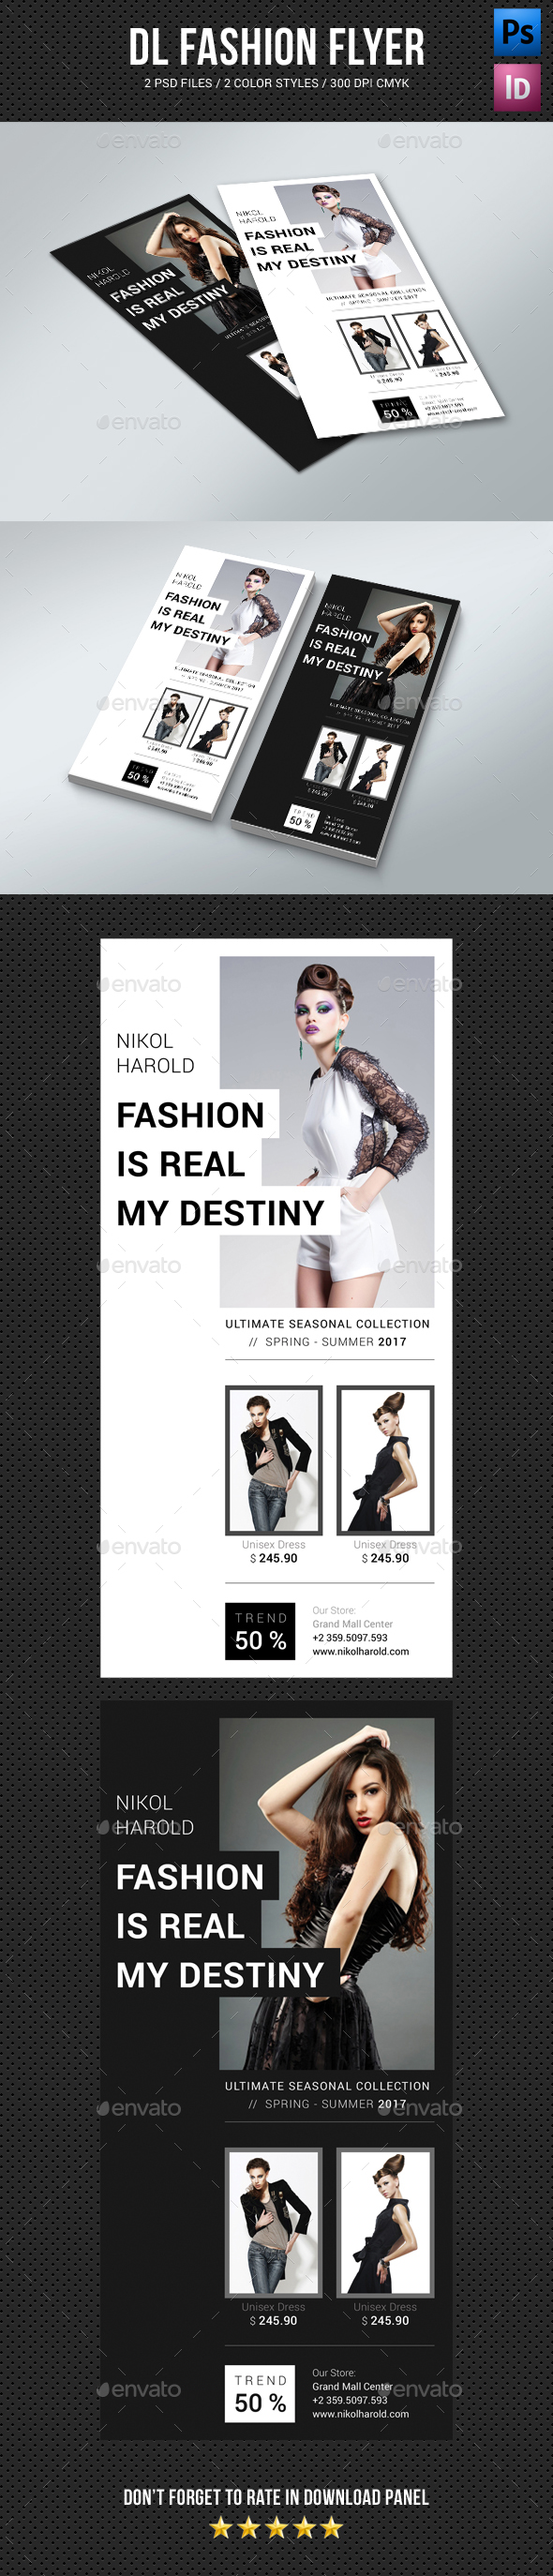 DL Fashion Flyer 02 - Commerce Flyers